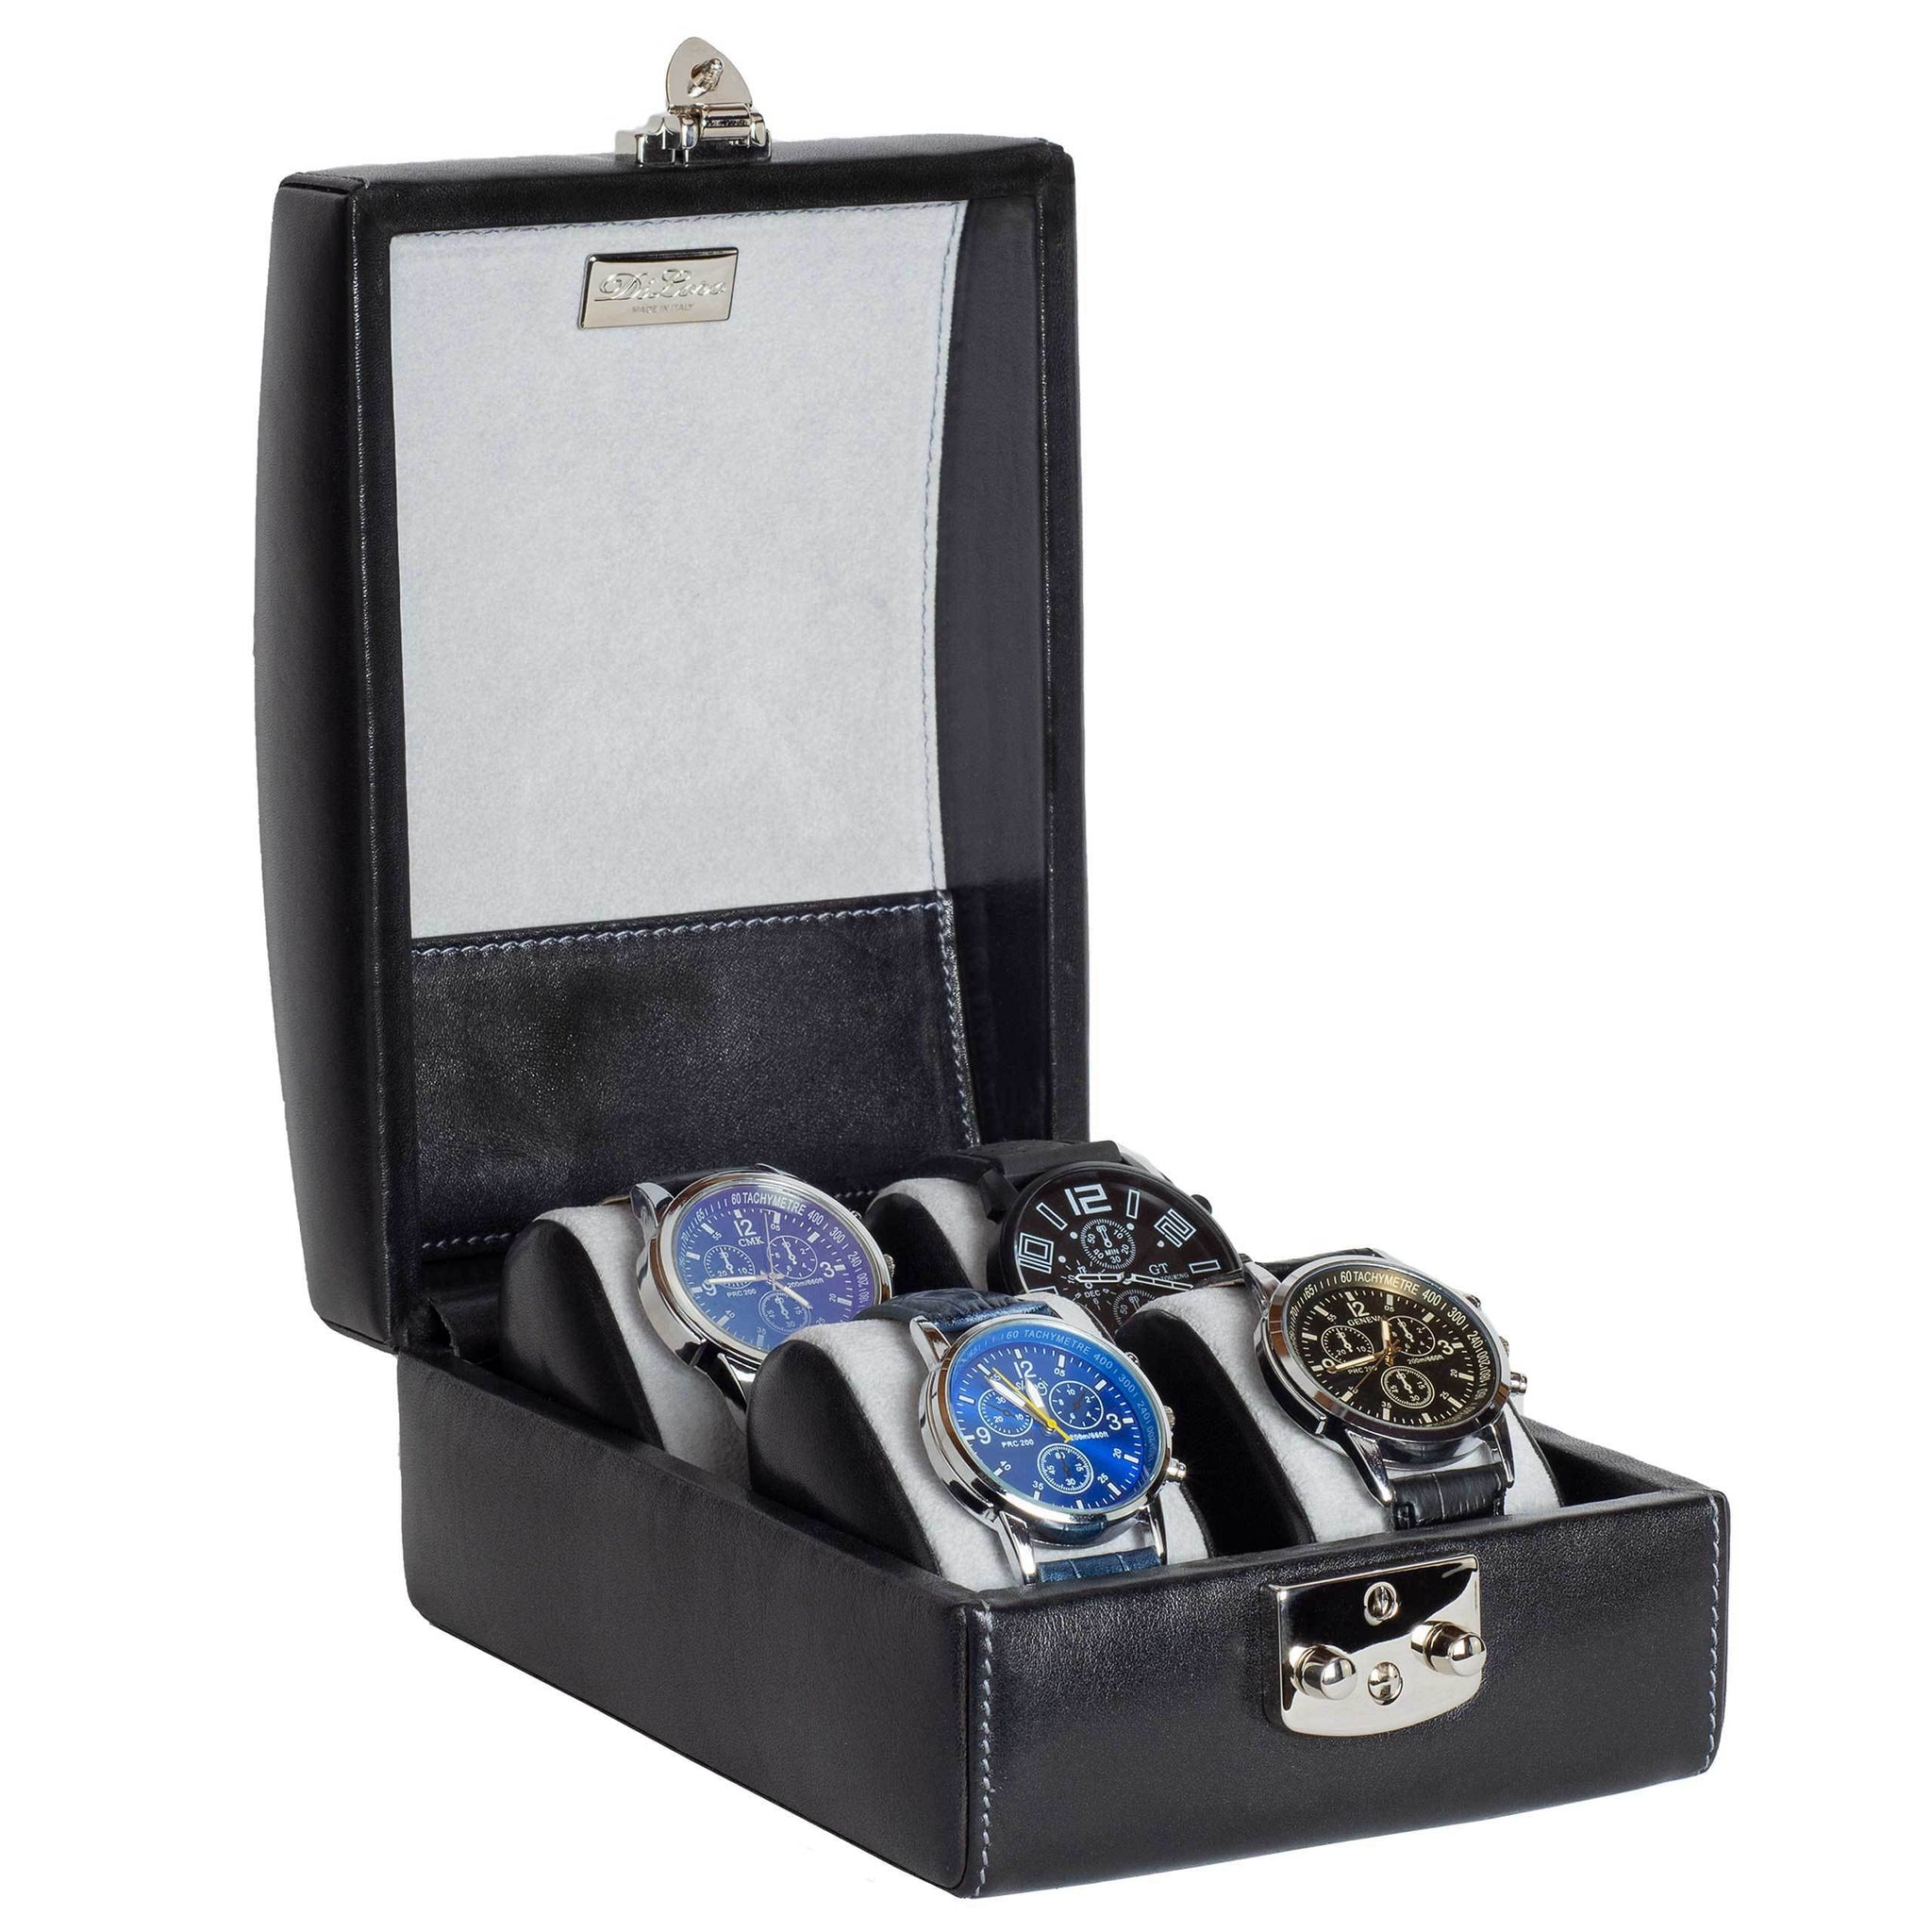 DiLoro Italian Leather Four Watch Case Box in Midnight Black - Made in Italy Designed in Switzerland